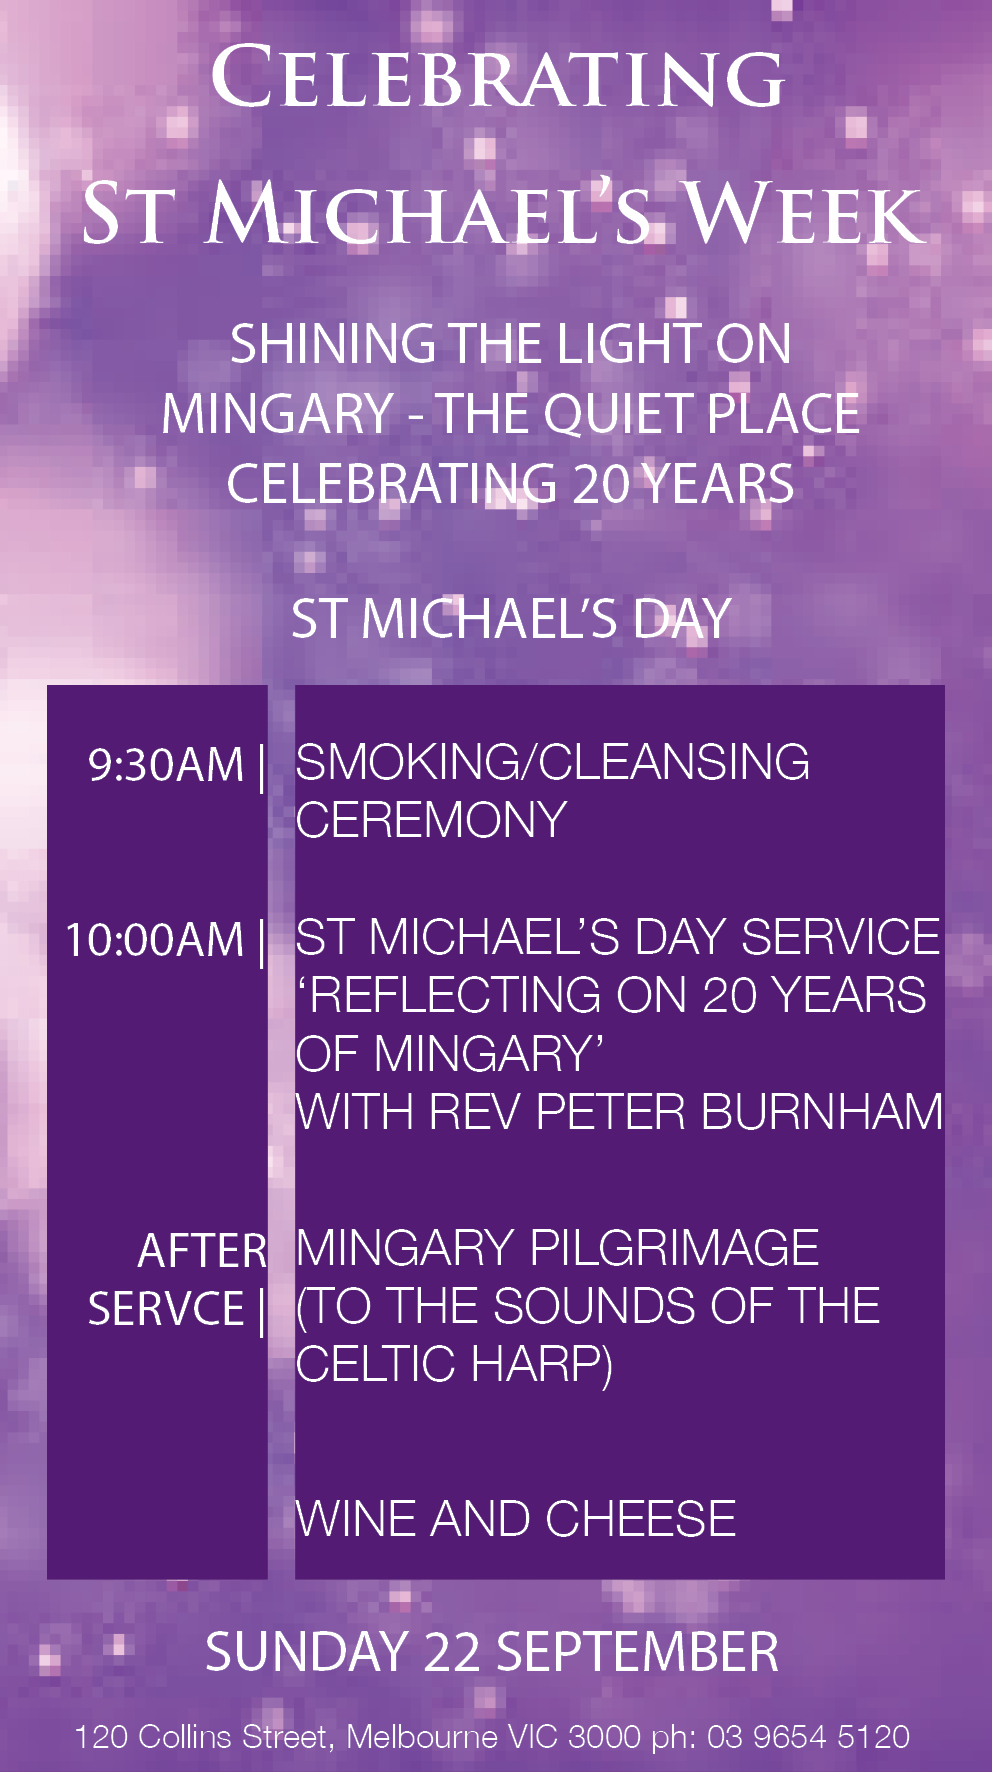 St Michael's Day